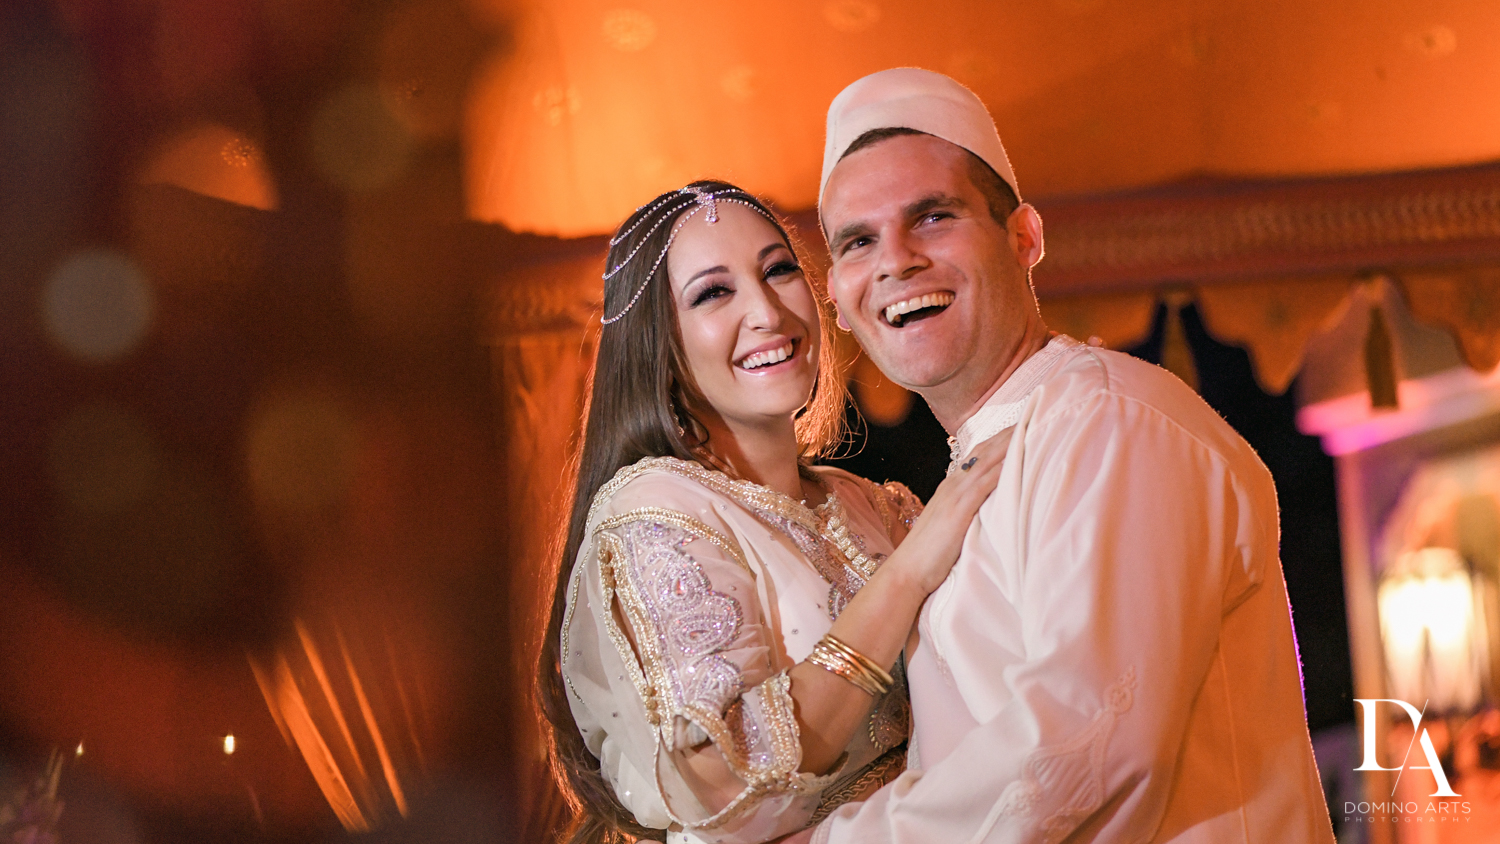 Happy couple at Traditional Henna Party Photography at Lavan South Florida by Domino Arts